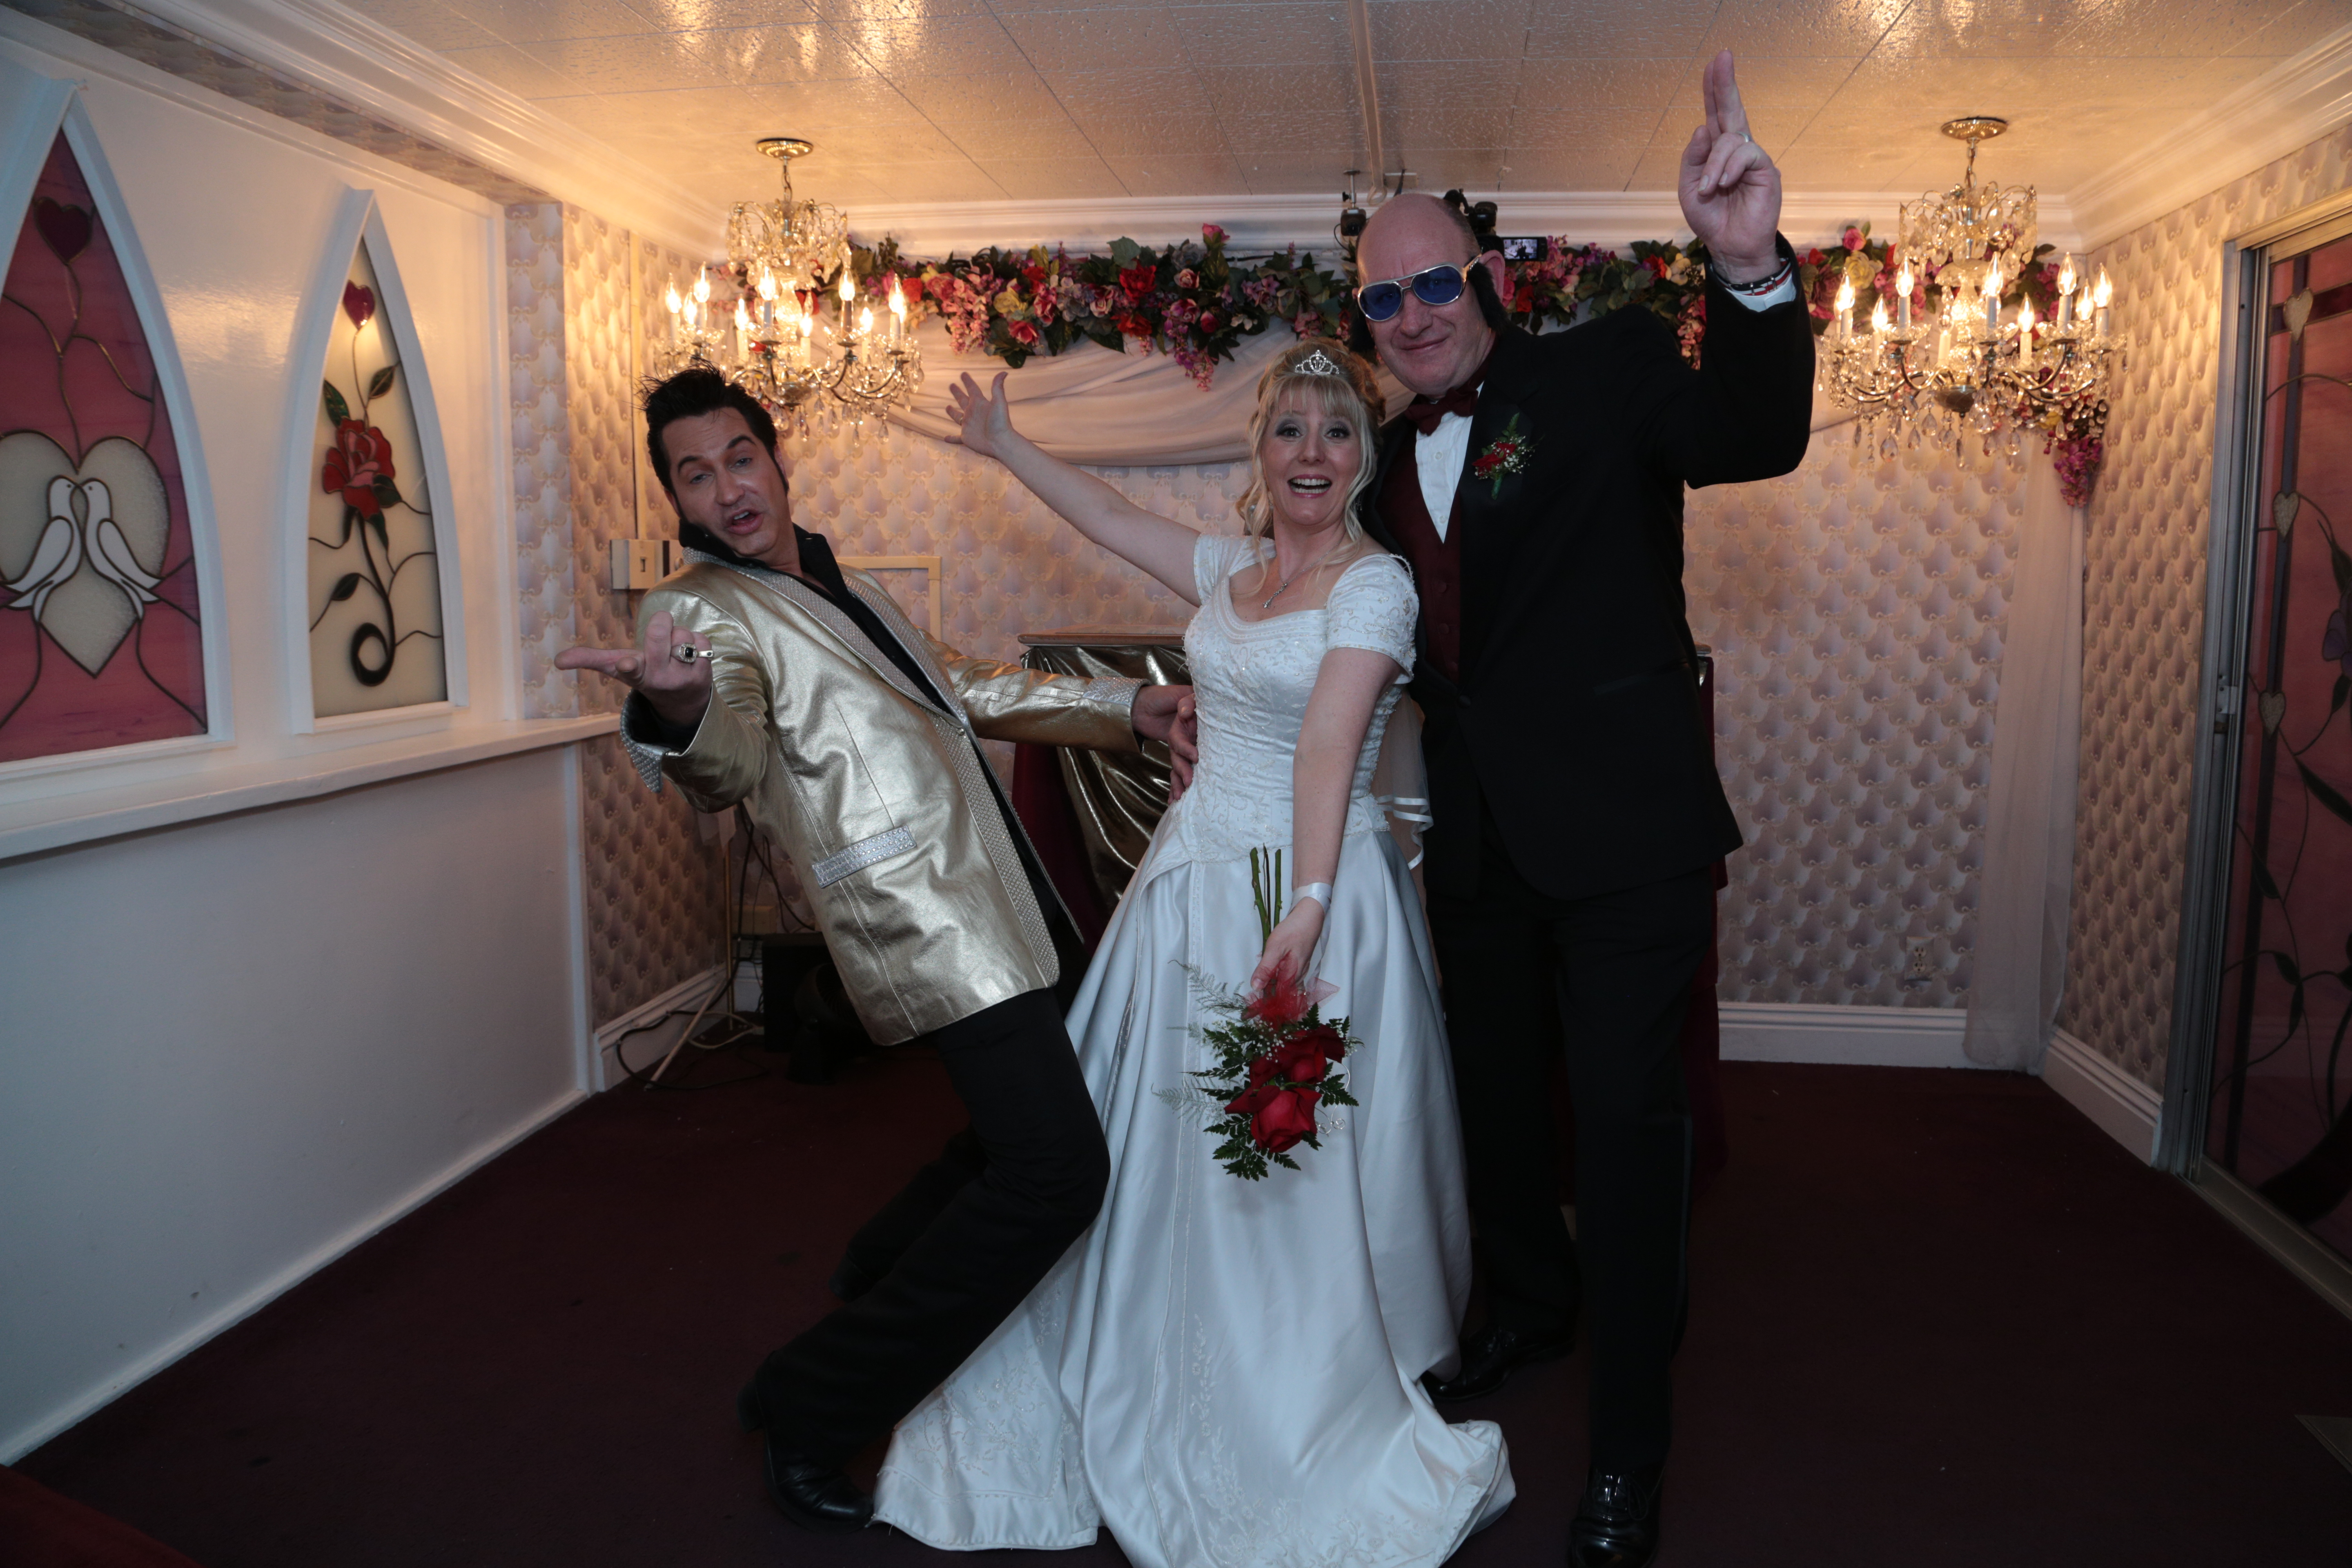 choosing the perfect wedding chapel in las vegas vegas wedding chapels Little White Wedding Chapel Las Vegas